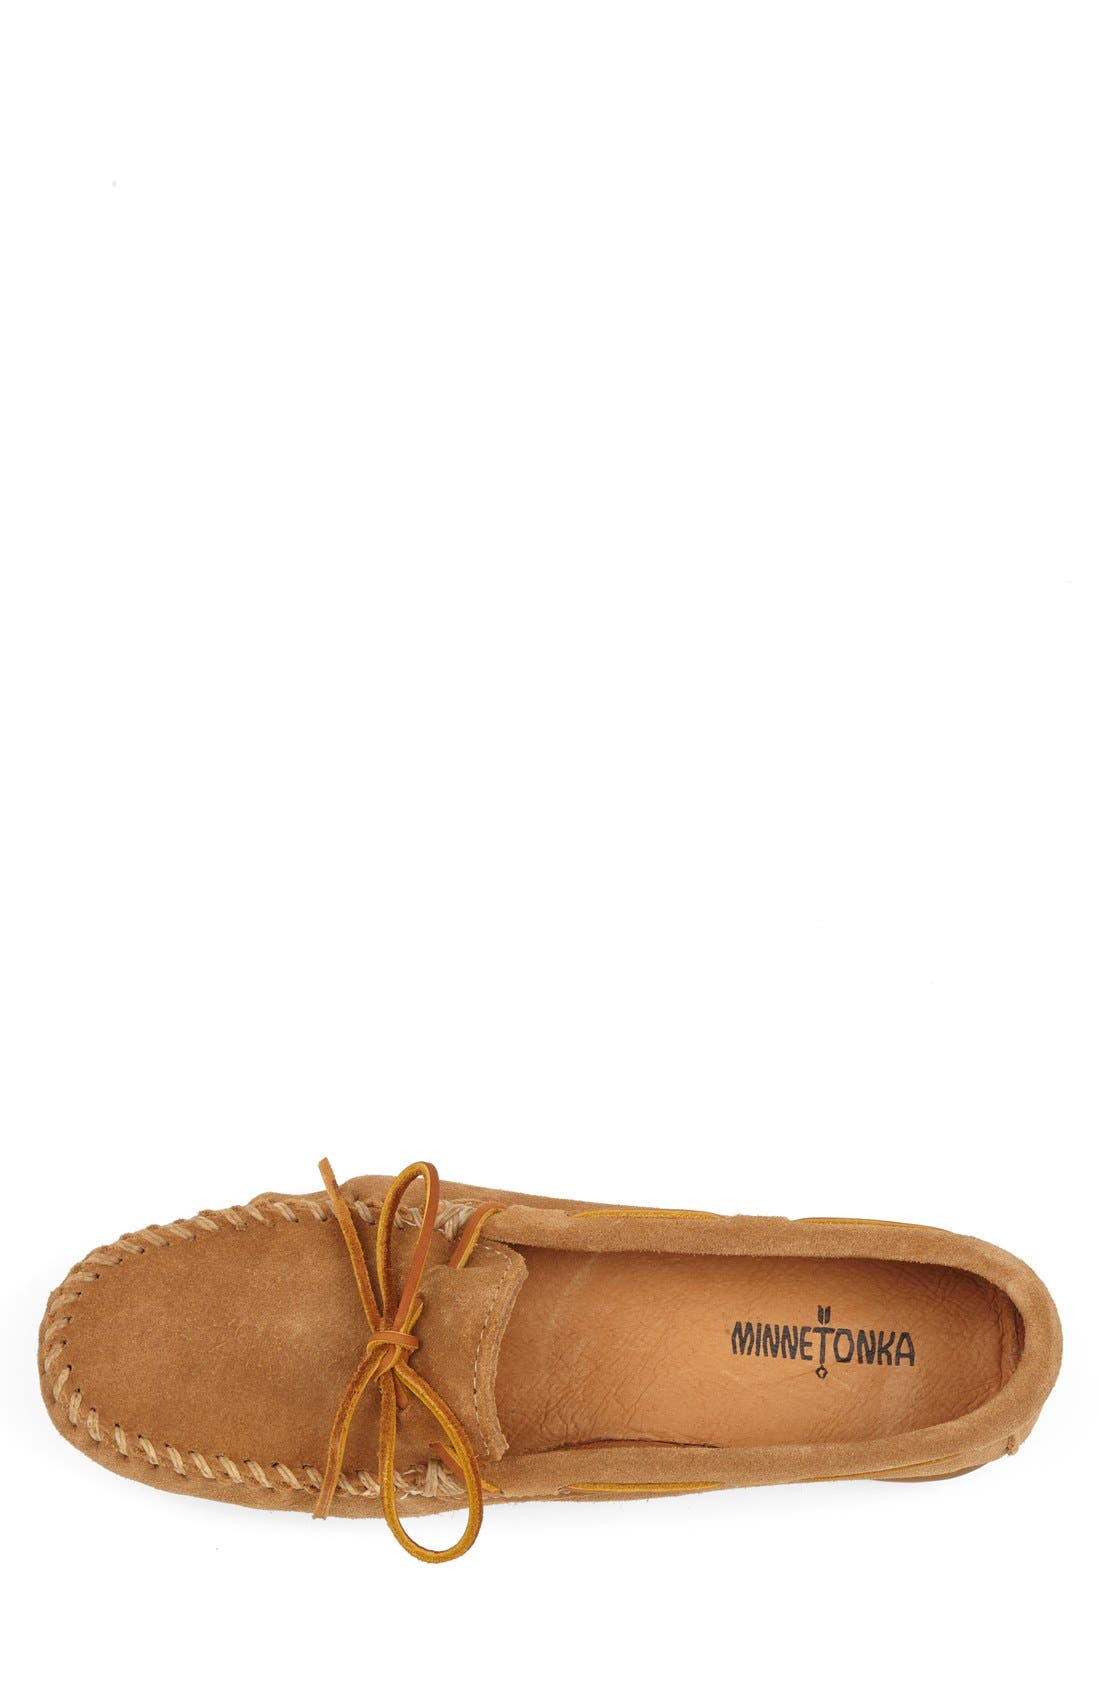 Alternate Image 3  - Minnetonka Suede Driving Shoe